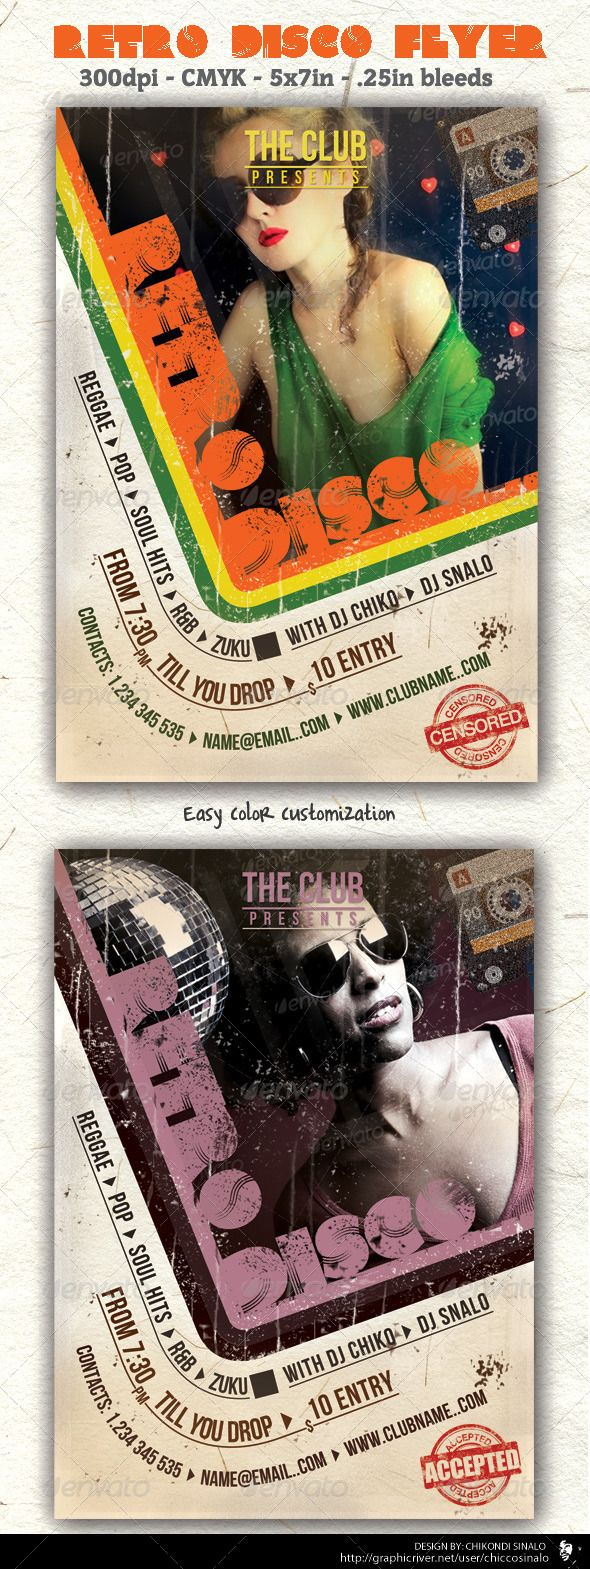 1000 images about battle of the bands on pinterest dollar bills money origami and party flyer. Black Bedroom Furniture Sets. Home Design Ideas